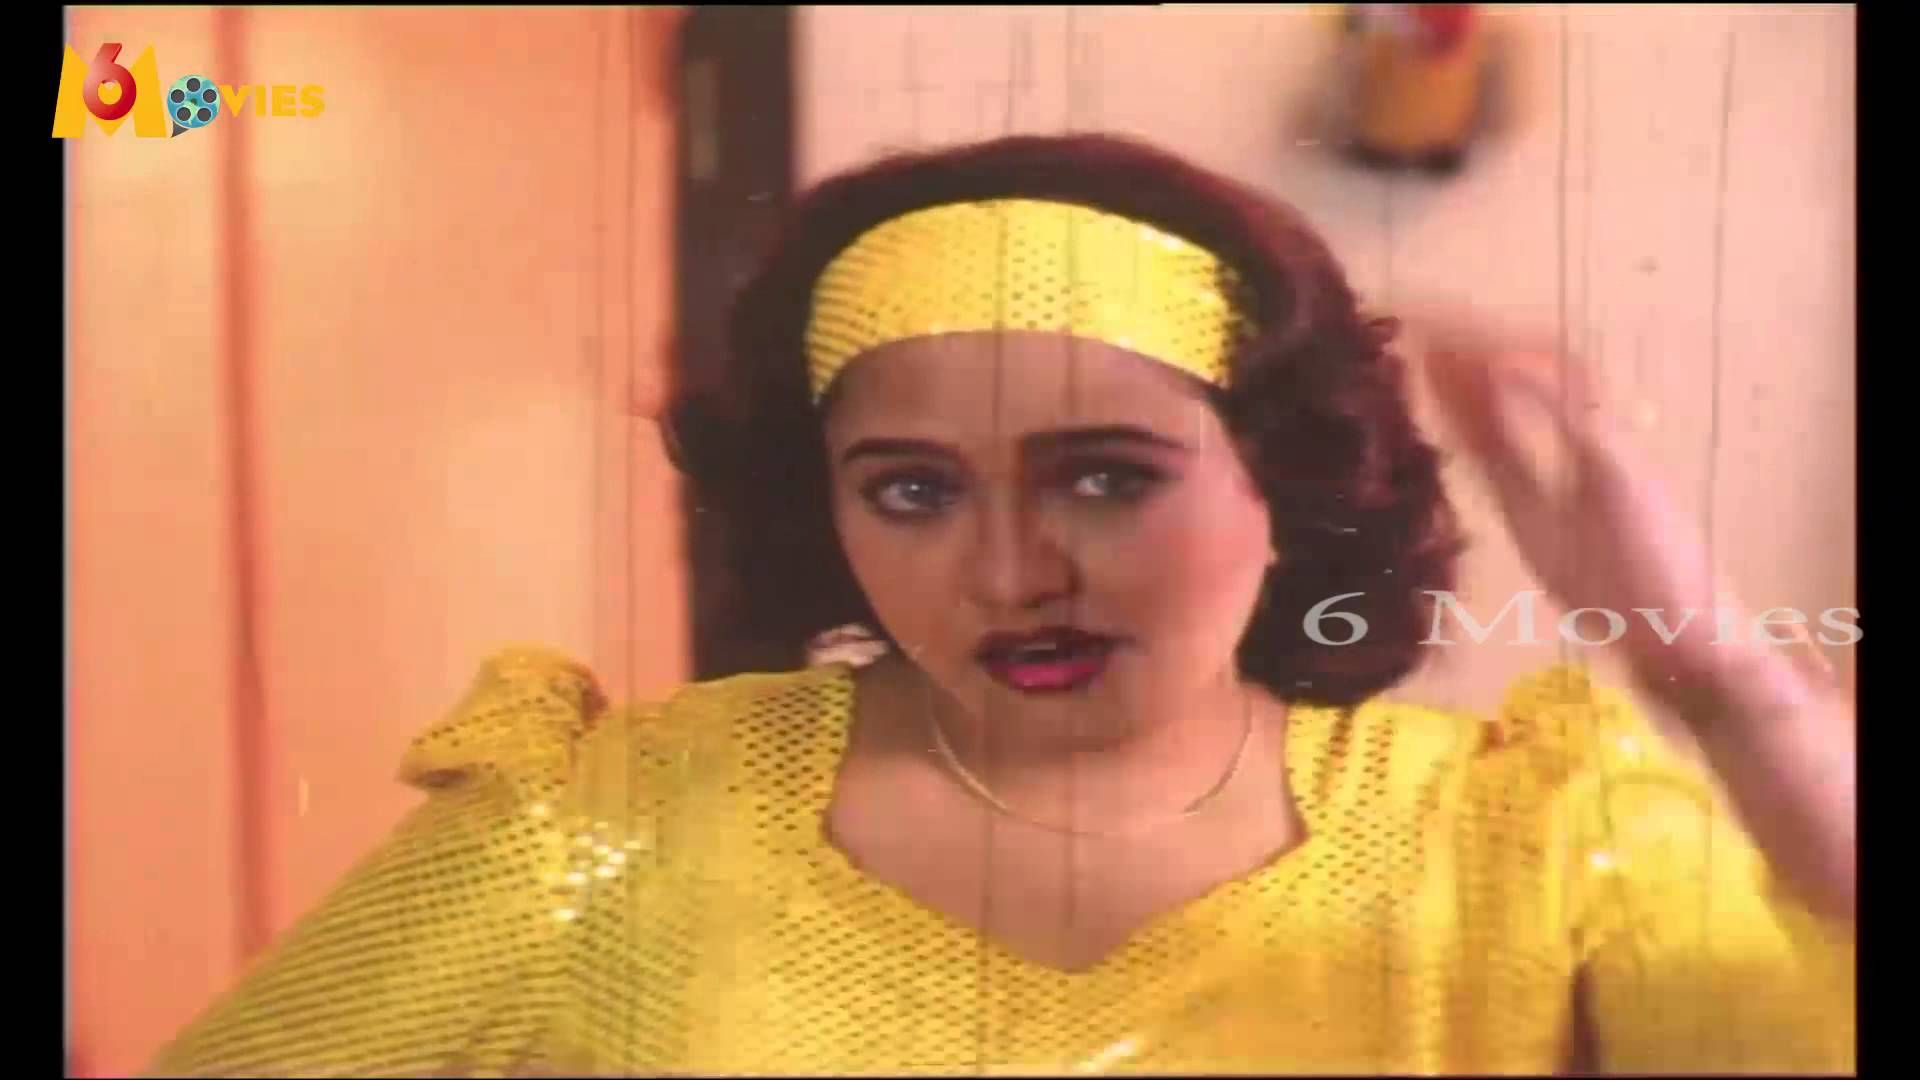 Reshma Naked Images Simple tamil hot glamour movie reshma hot romantic scenes tamil latest